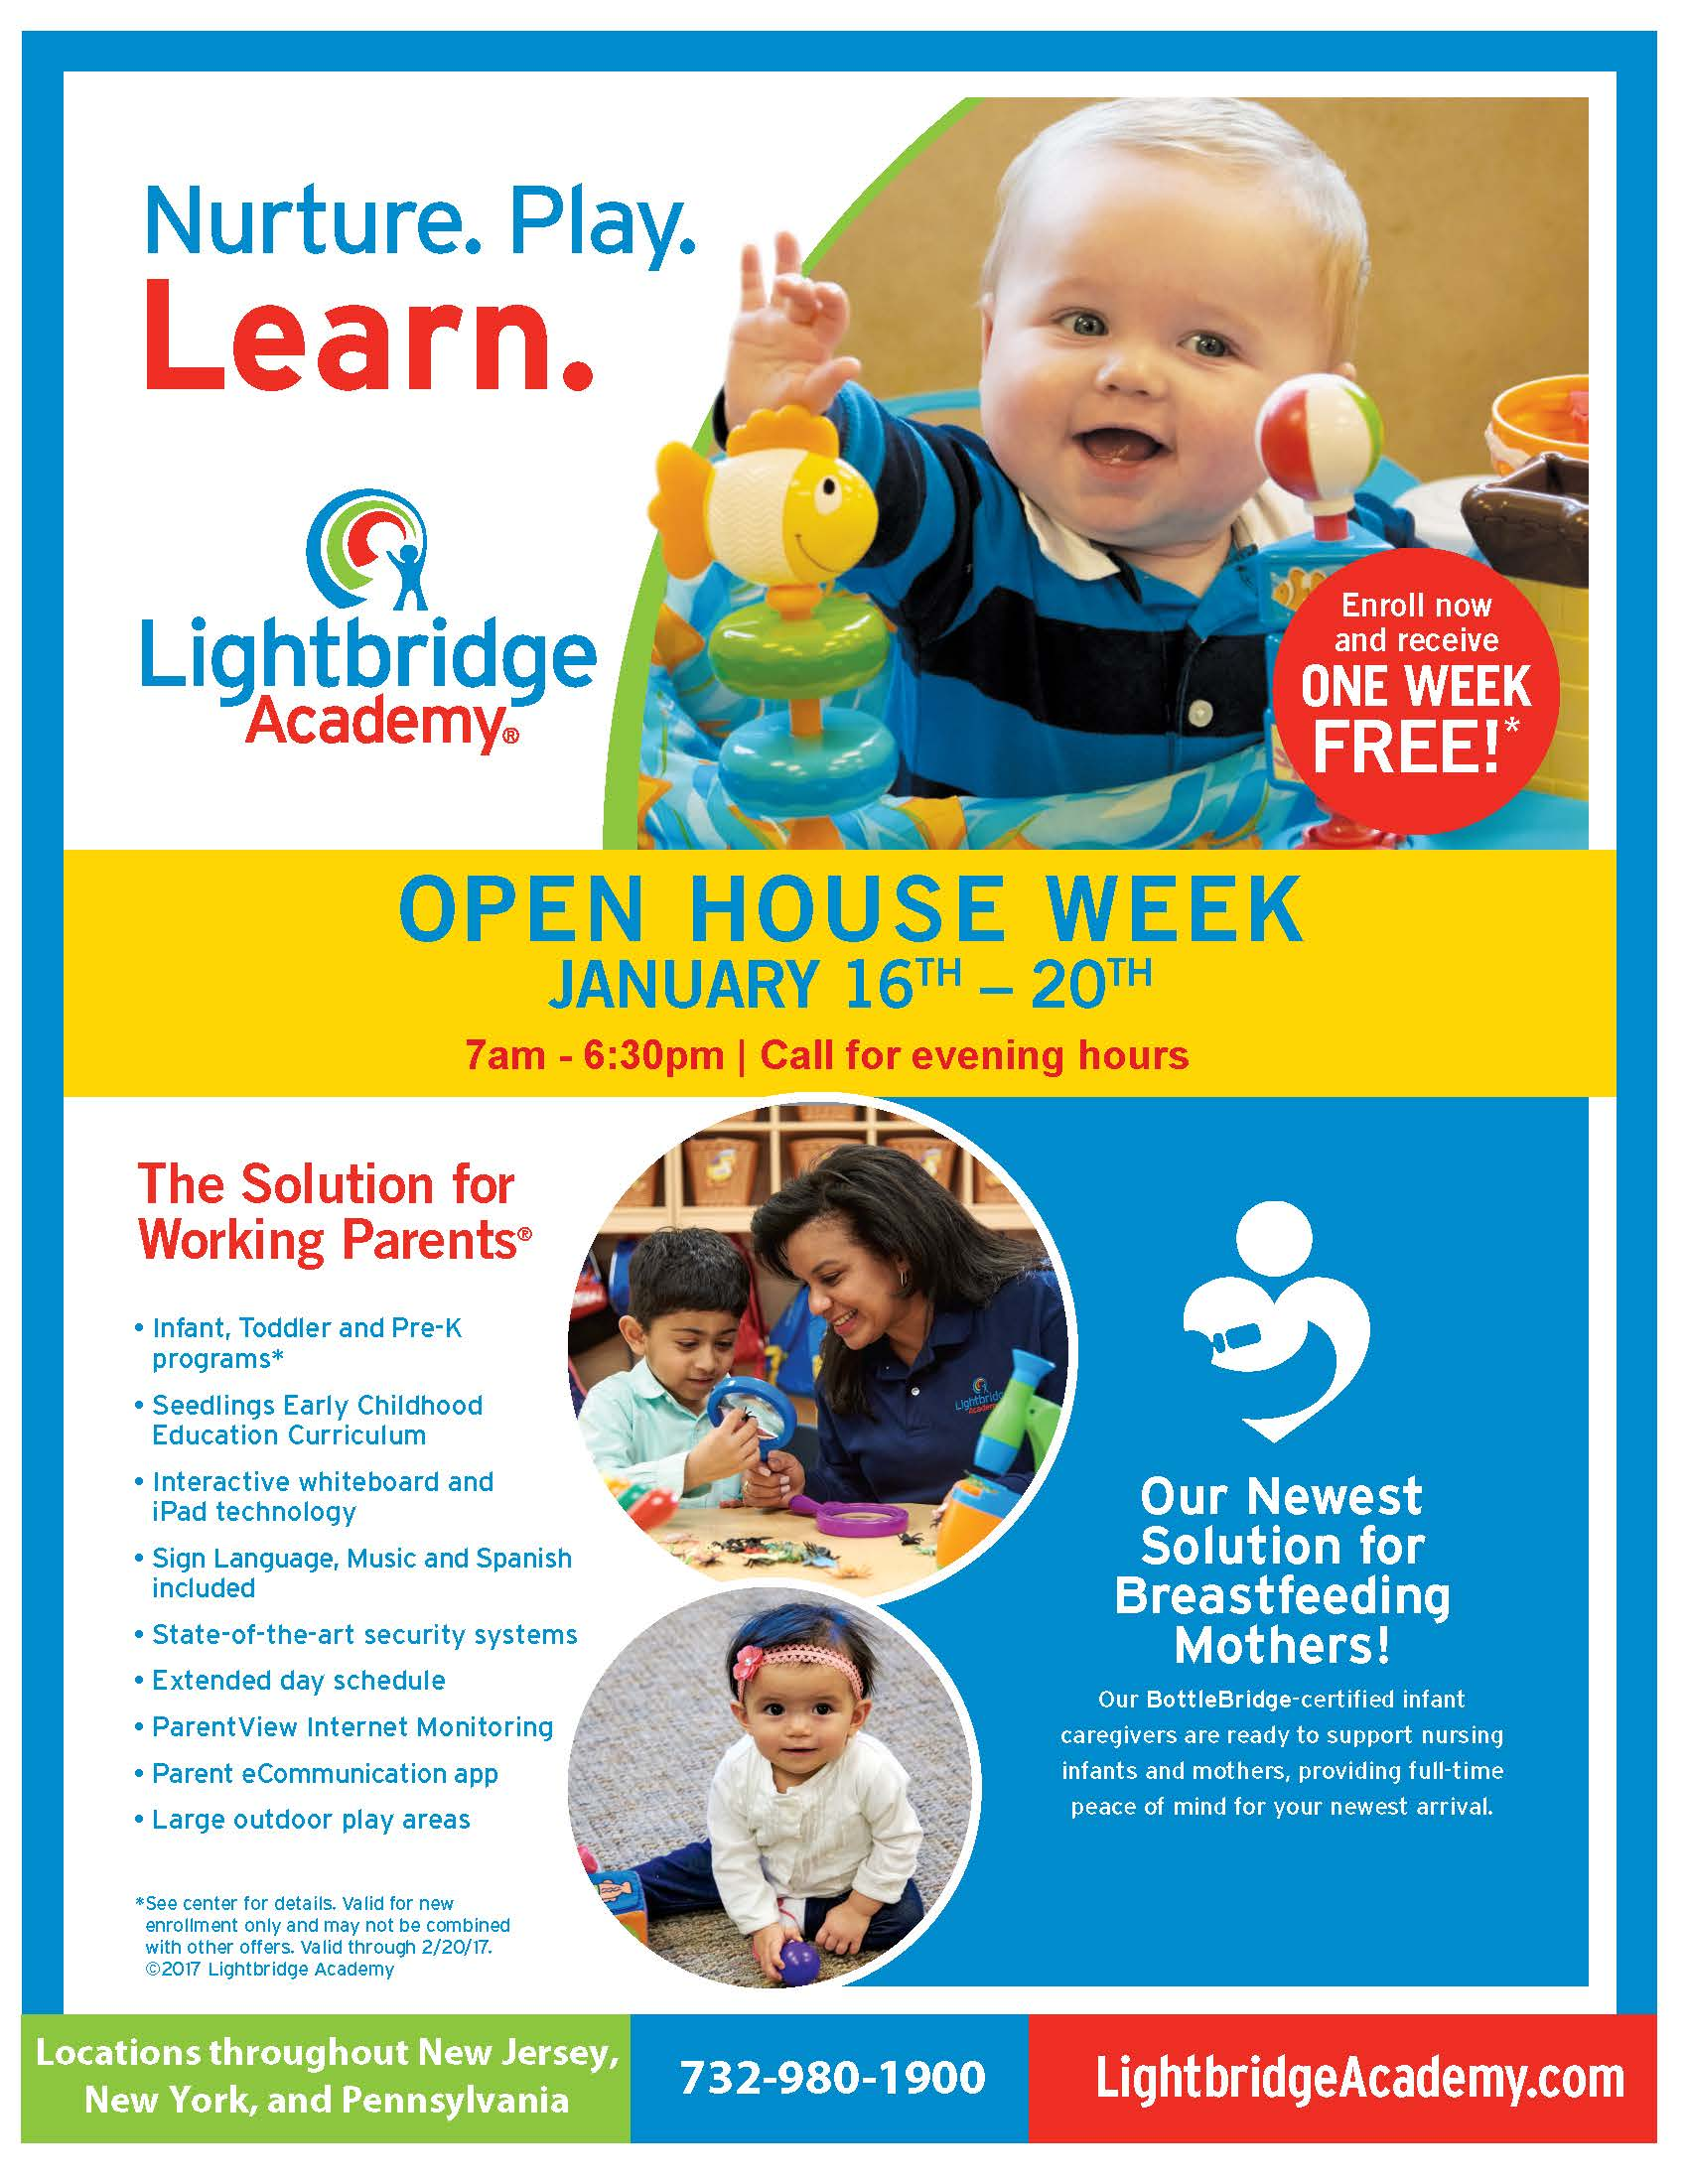 Lightbridge Academy Open House Week